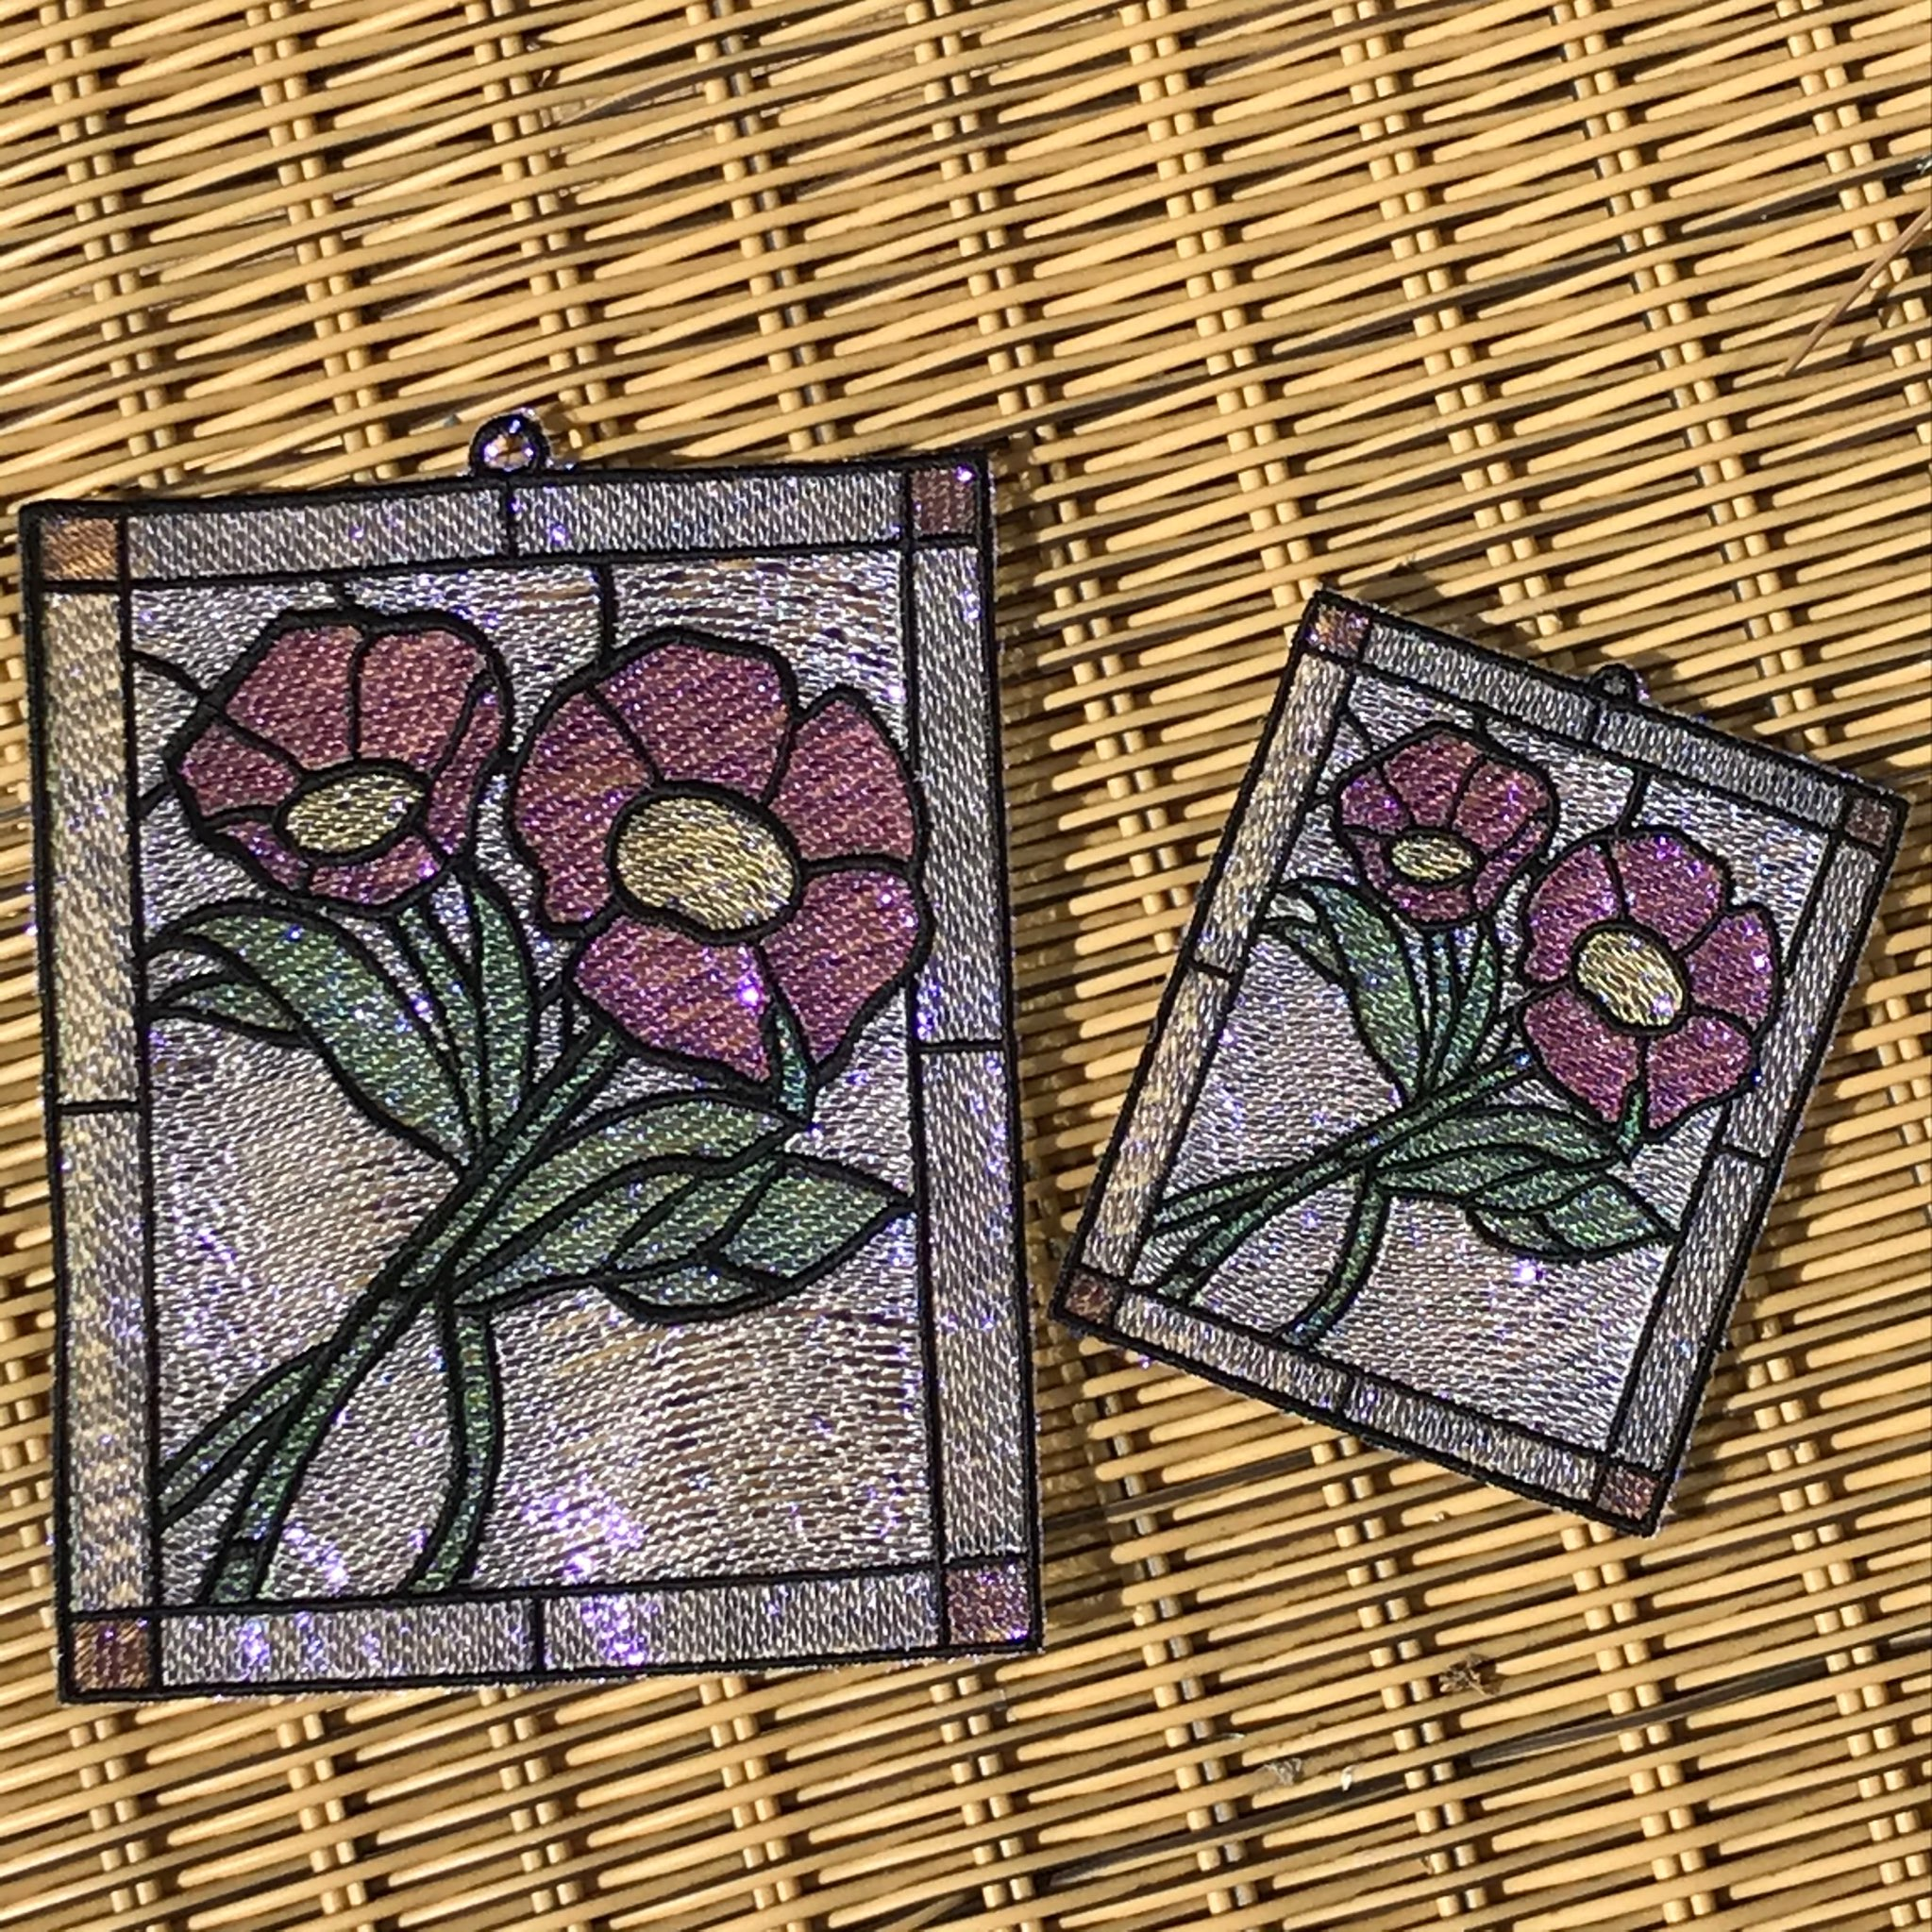 Stained Glass Mylar Machine Embroidery Design by Lisa Shaw for Embrilliance